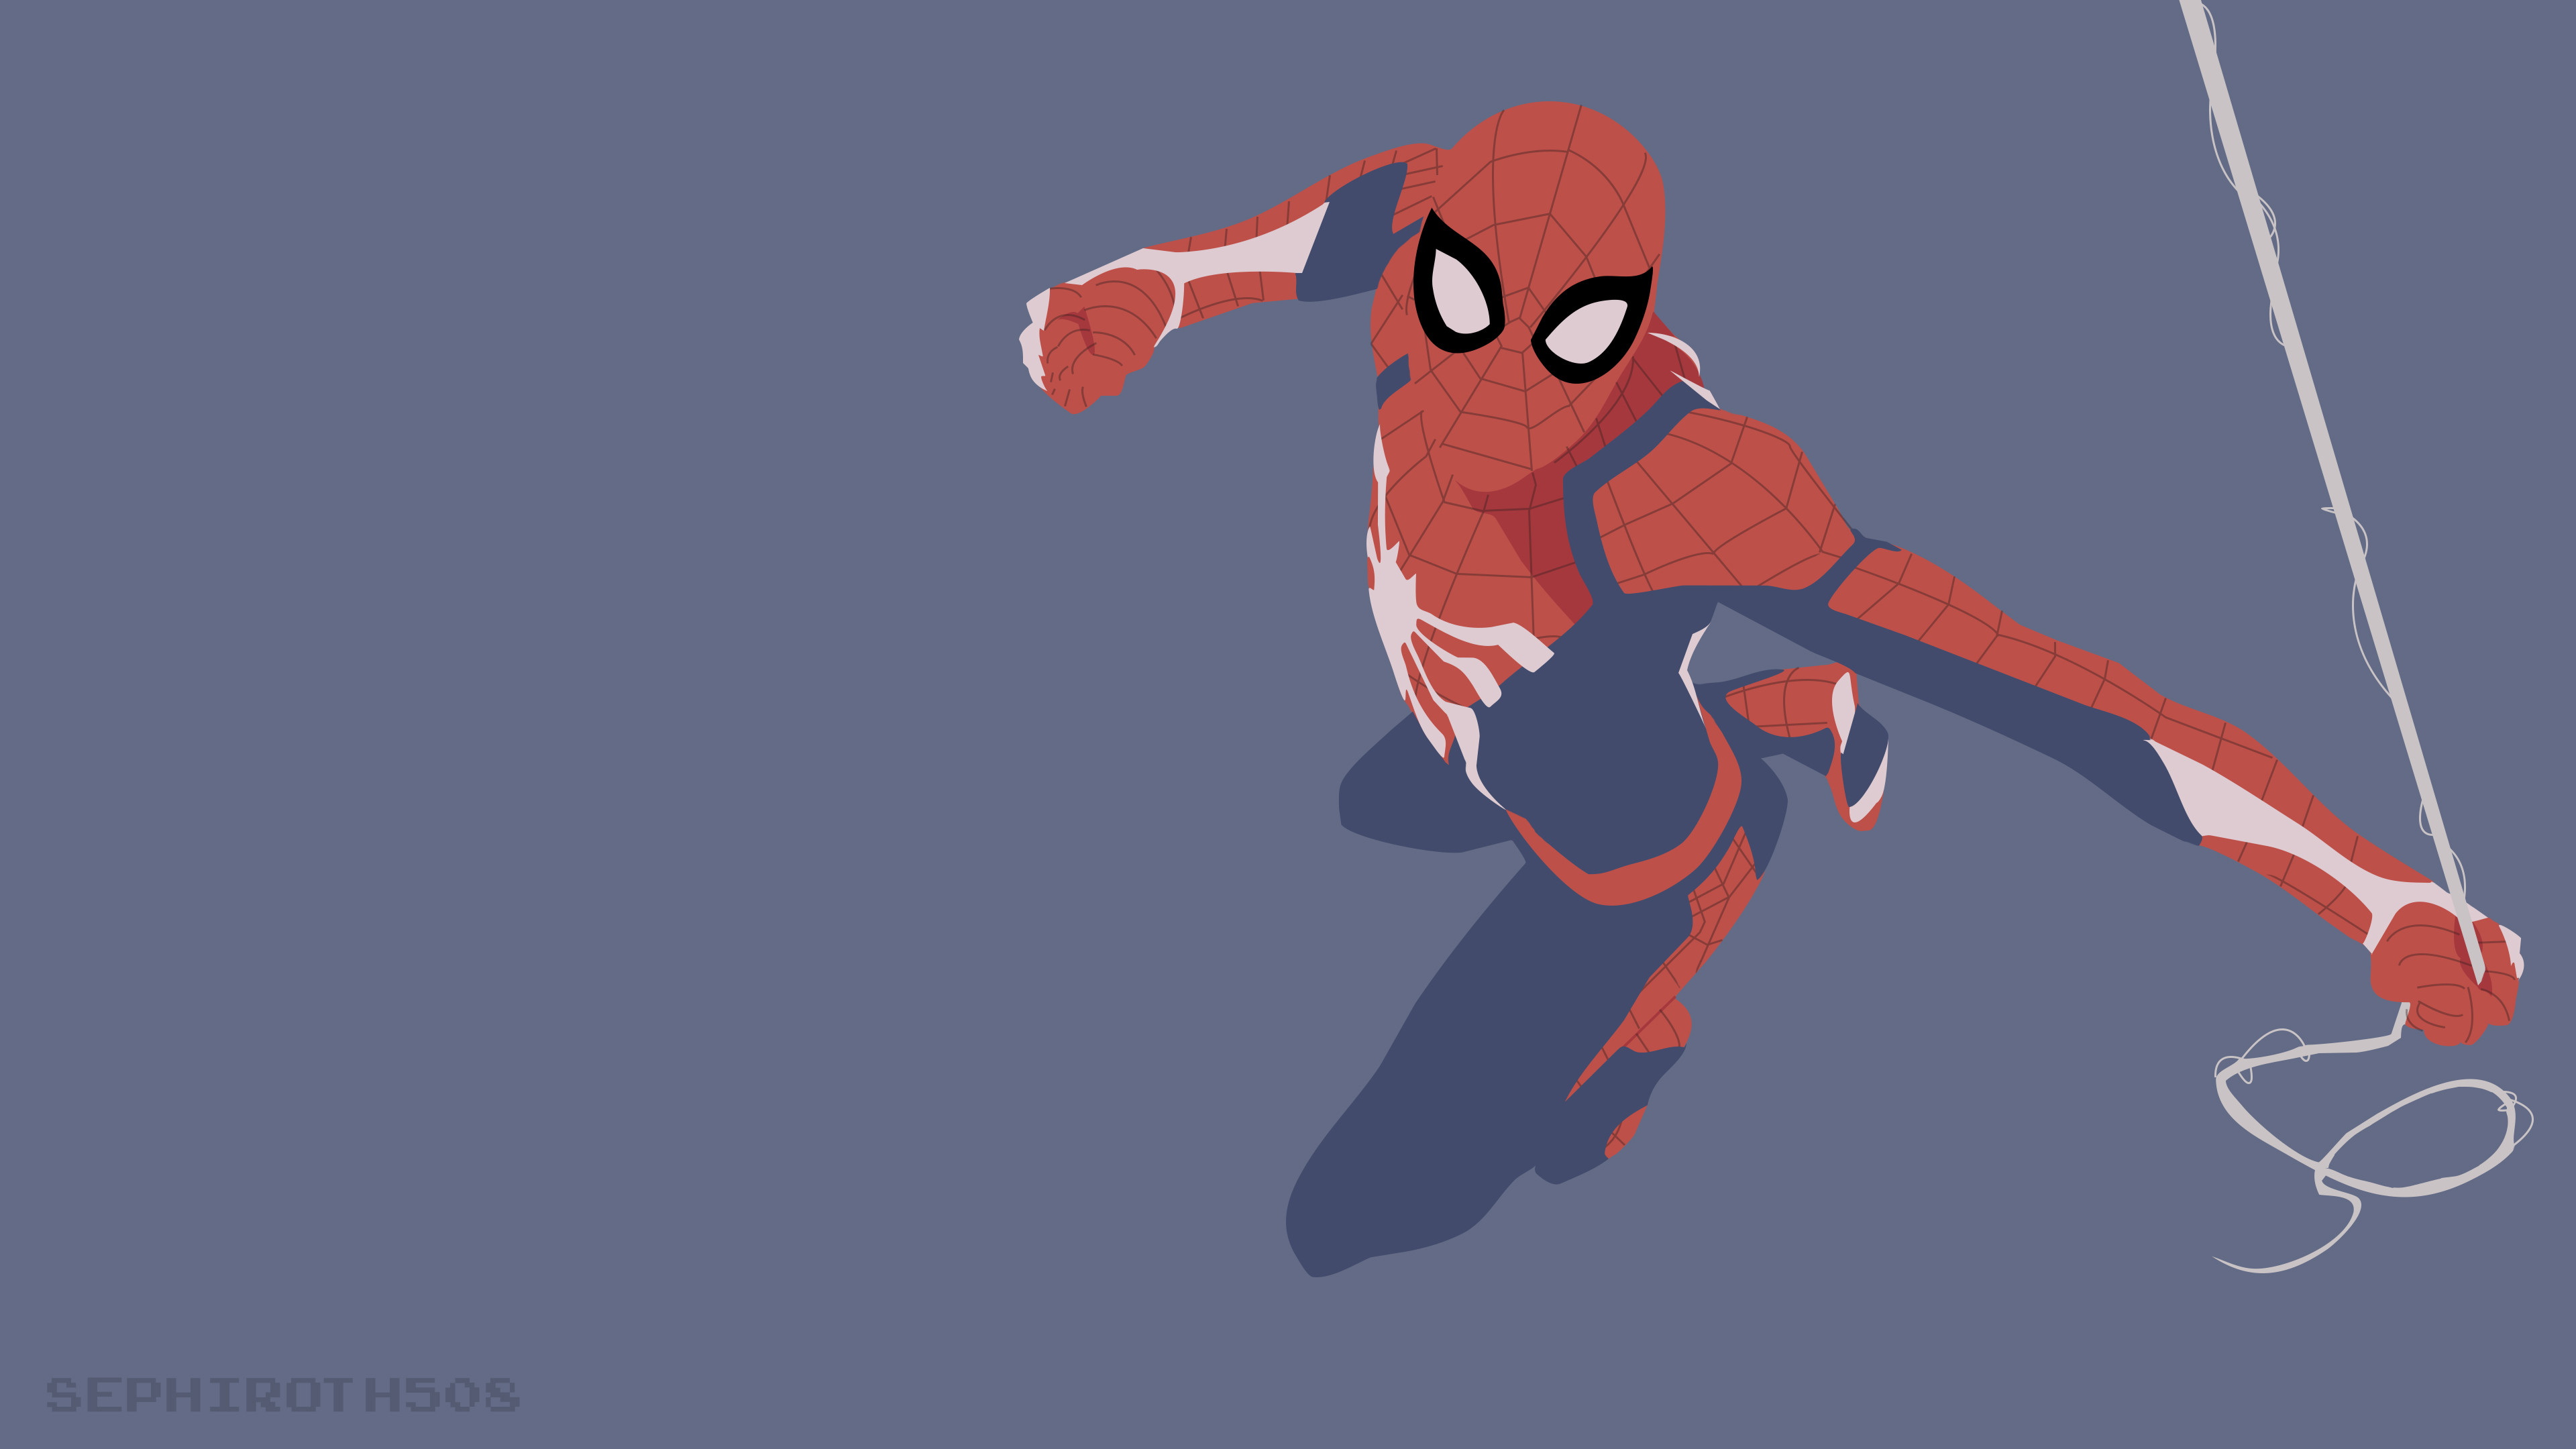 66 4K Spiderman Wallpapers on WallpaperPlay 3840x2160